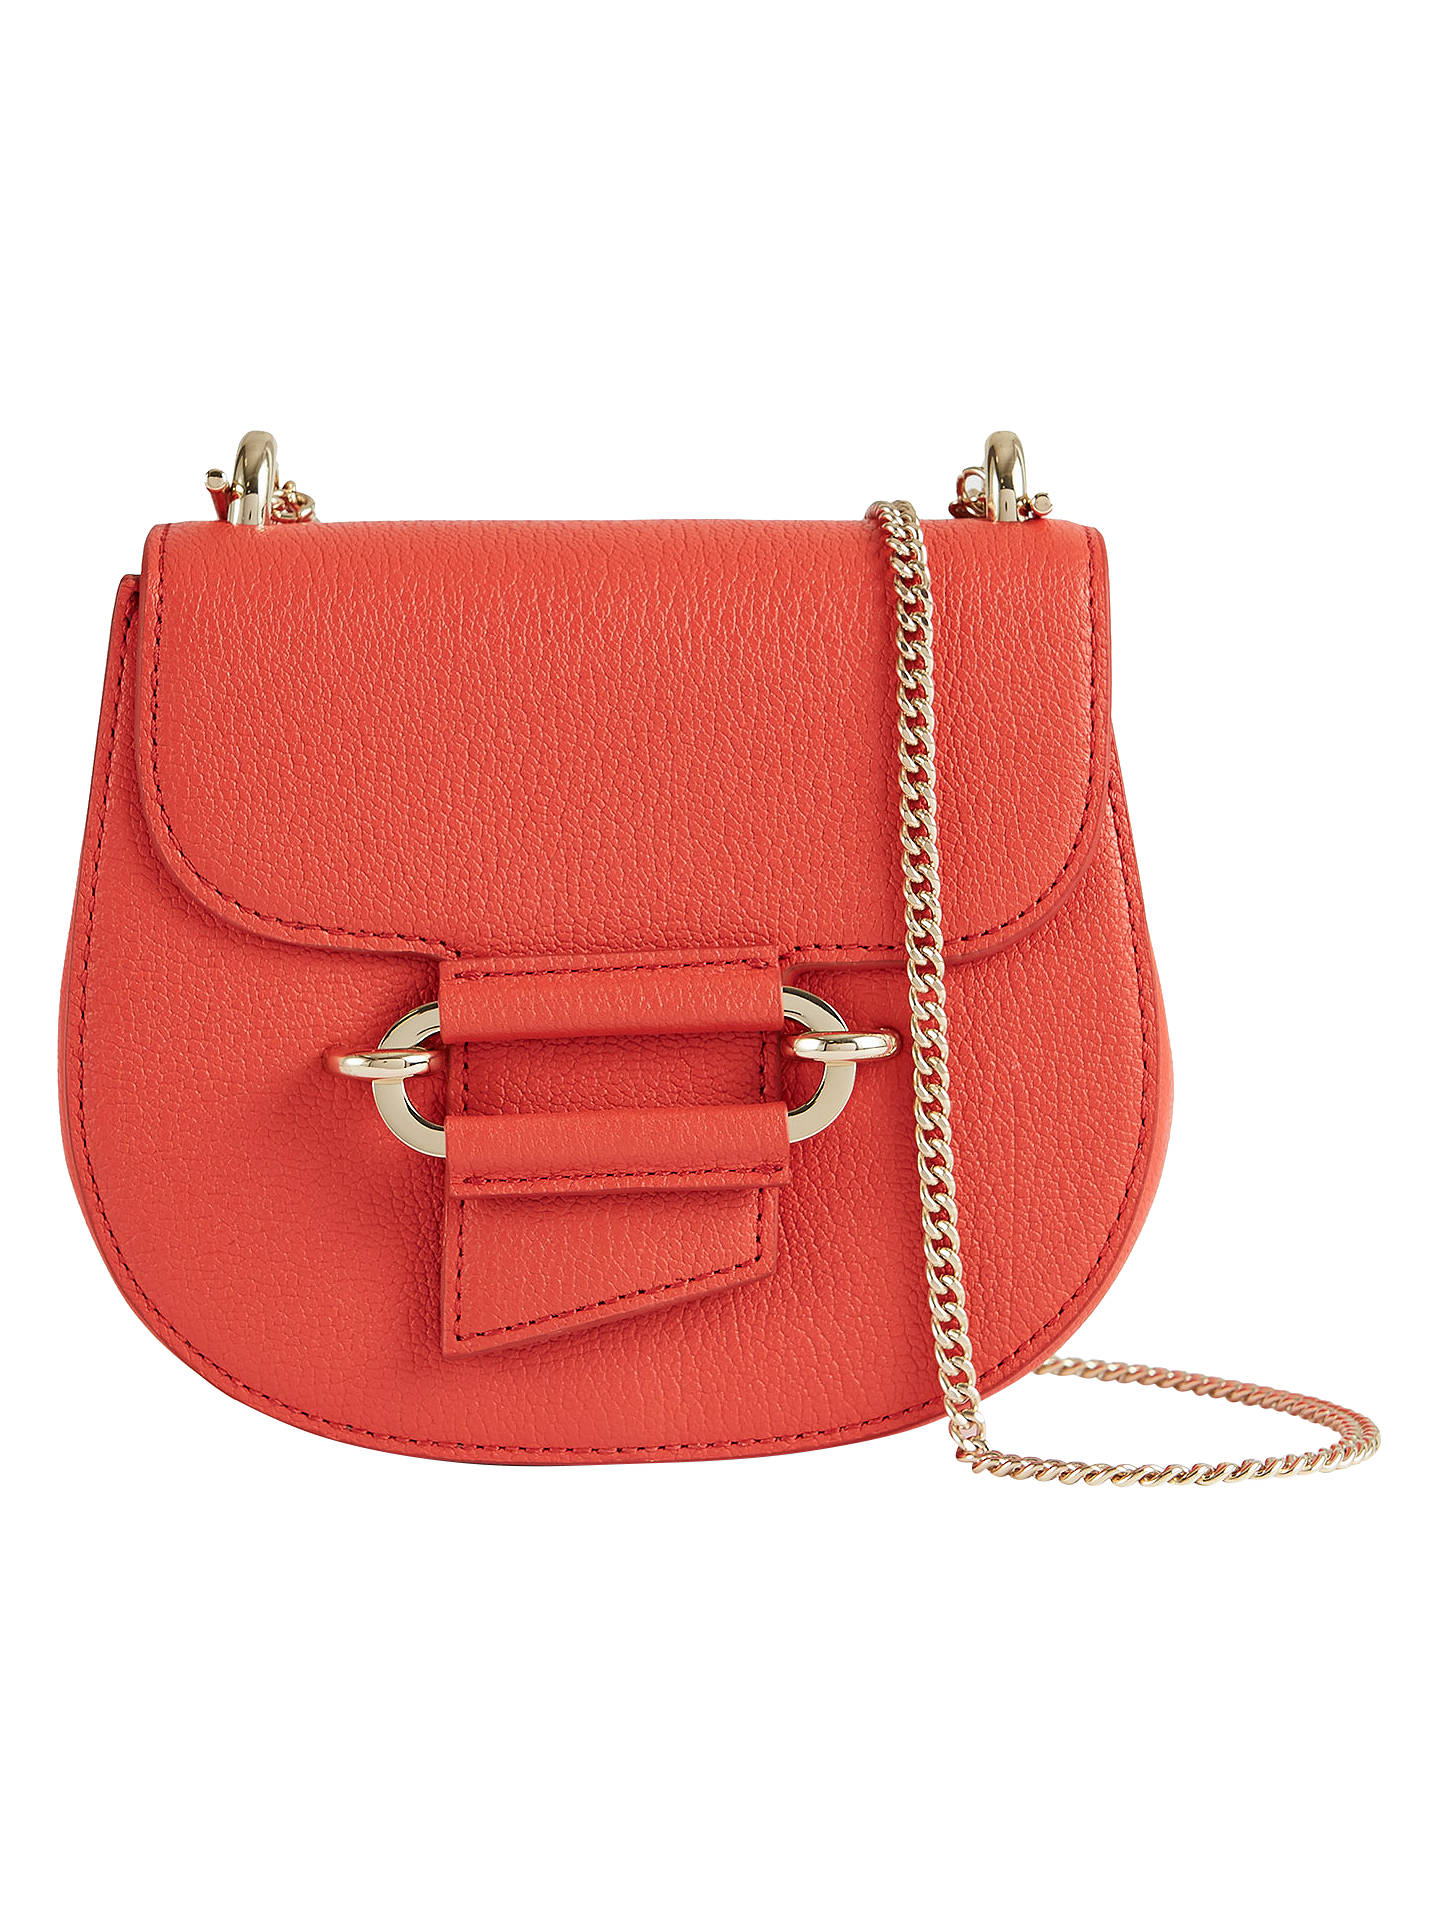 ffcd7b913c74 Reiss Mini Maltby Leather Crossbody Bag at John Lewis   Partners